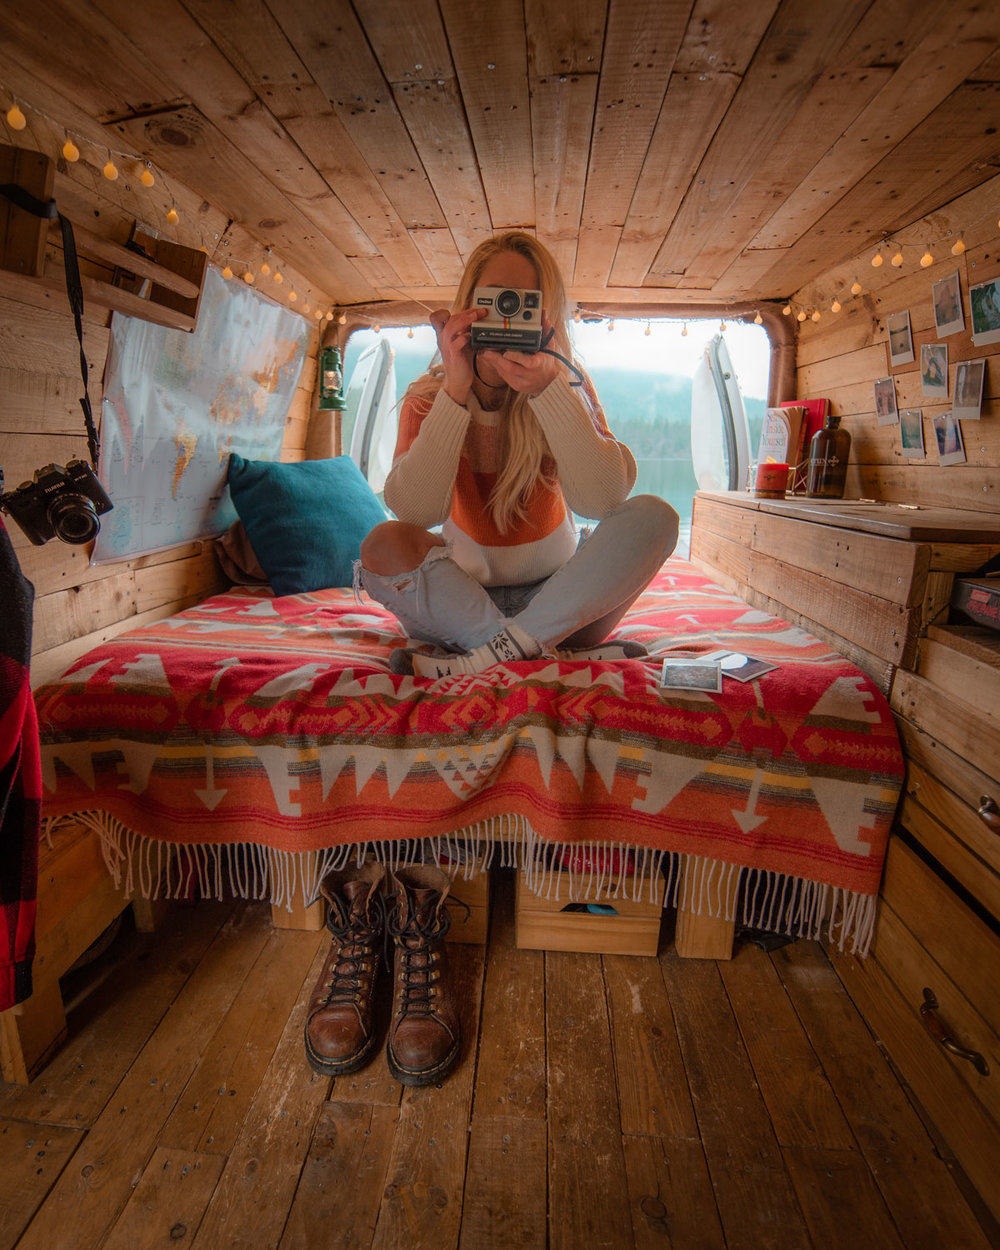 The van will never be as clean as it is whilst doing a photoshoot in it, but who wants to look at a messy van?! Tell the story and sell the dream, the dream you're actually living, just a slightly tidier version!